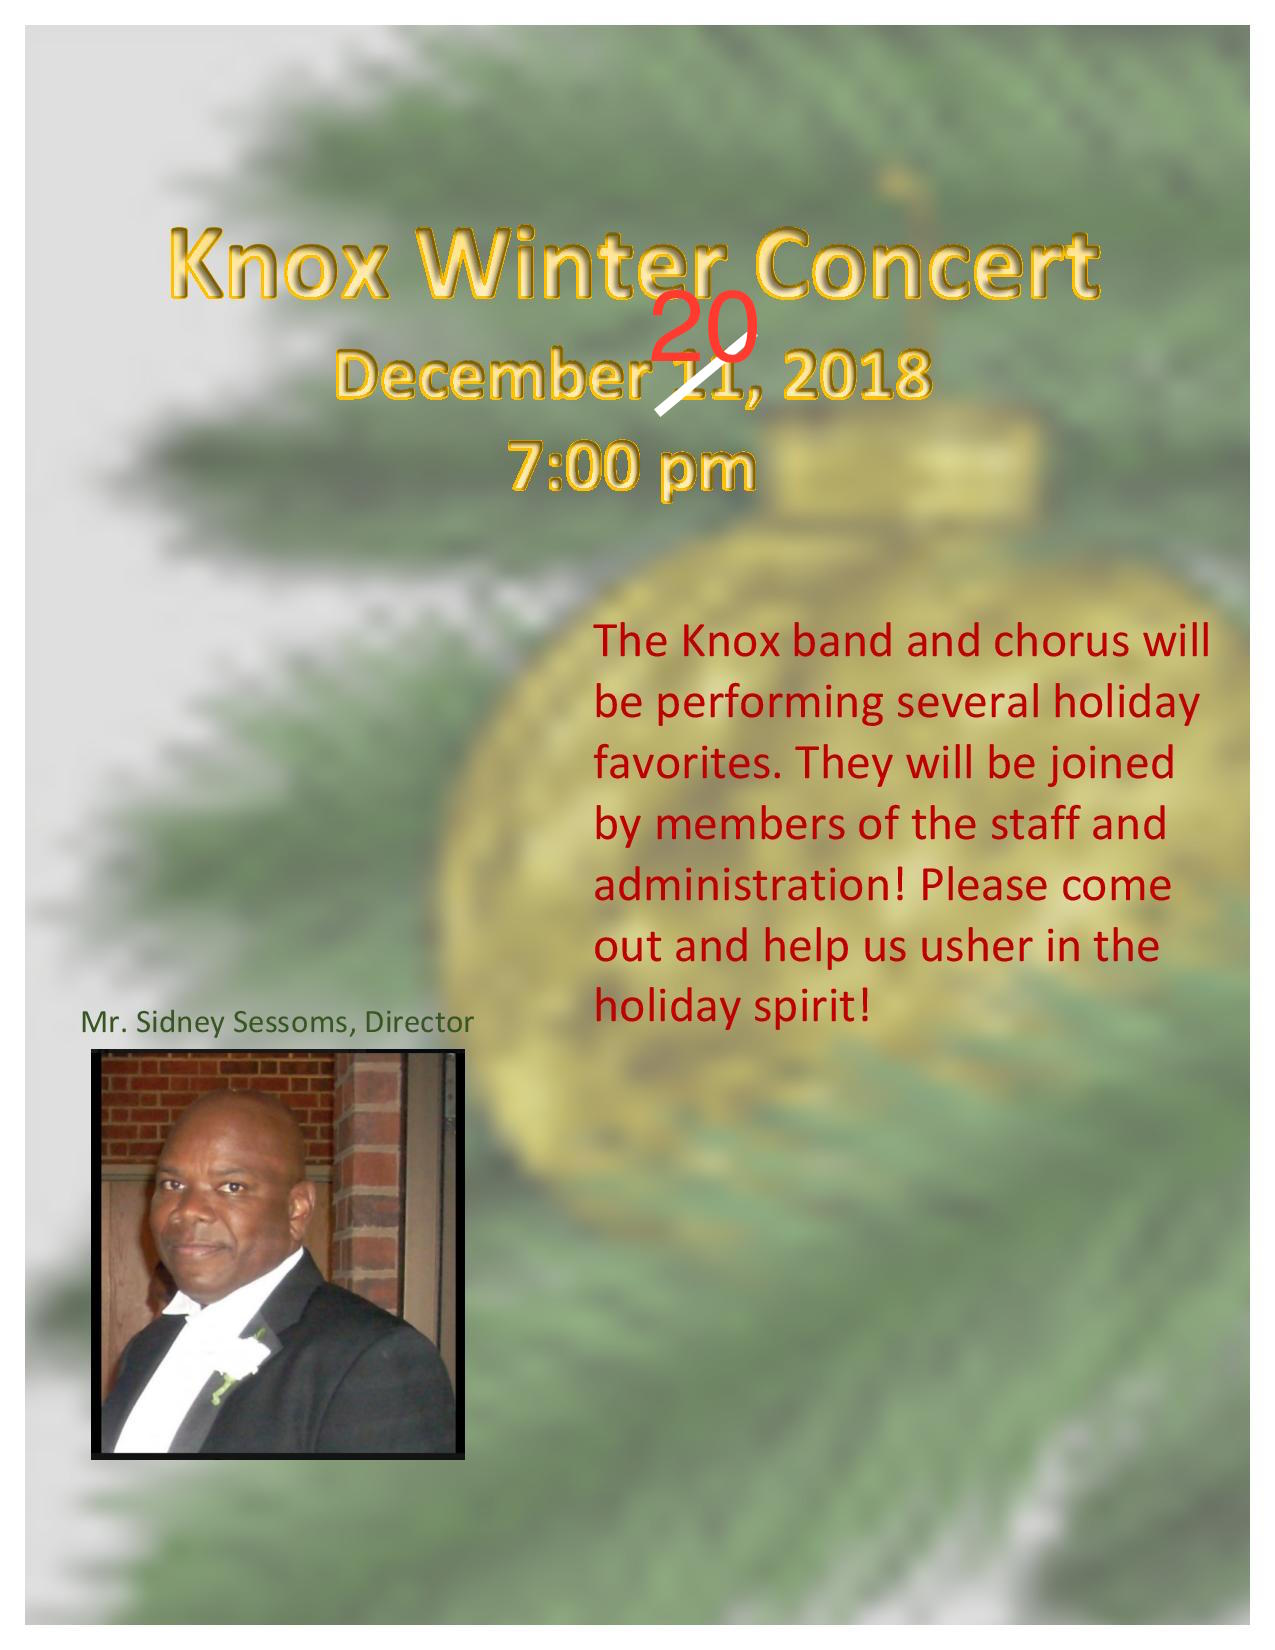 Knox Winter Concert